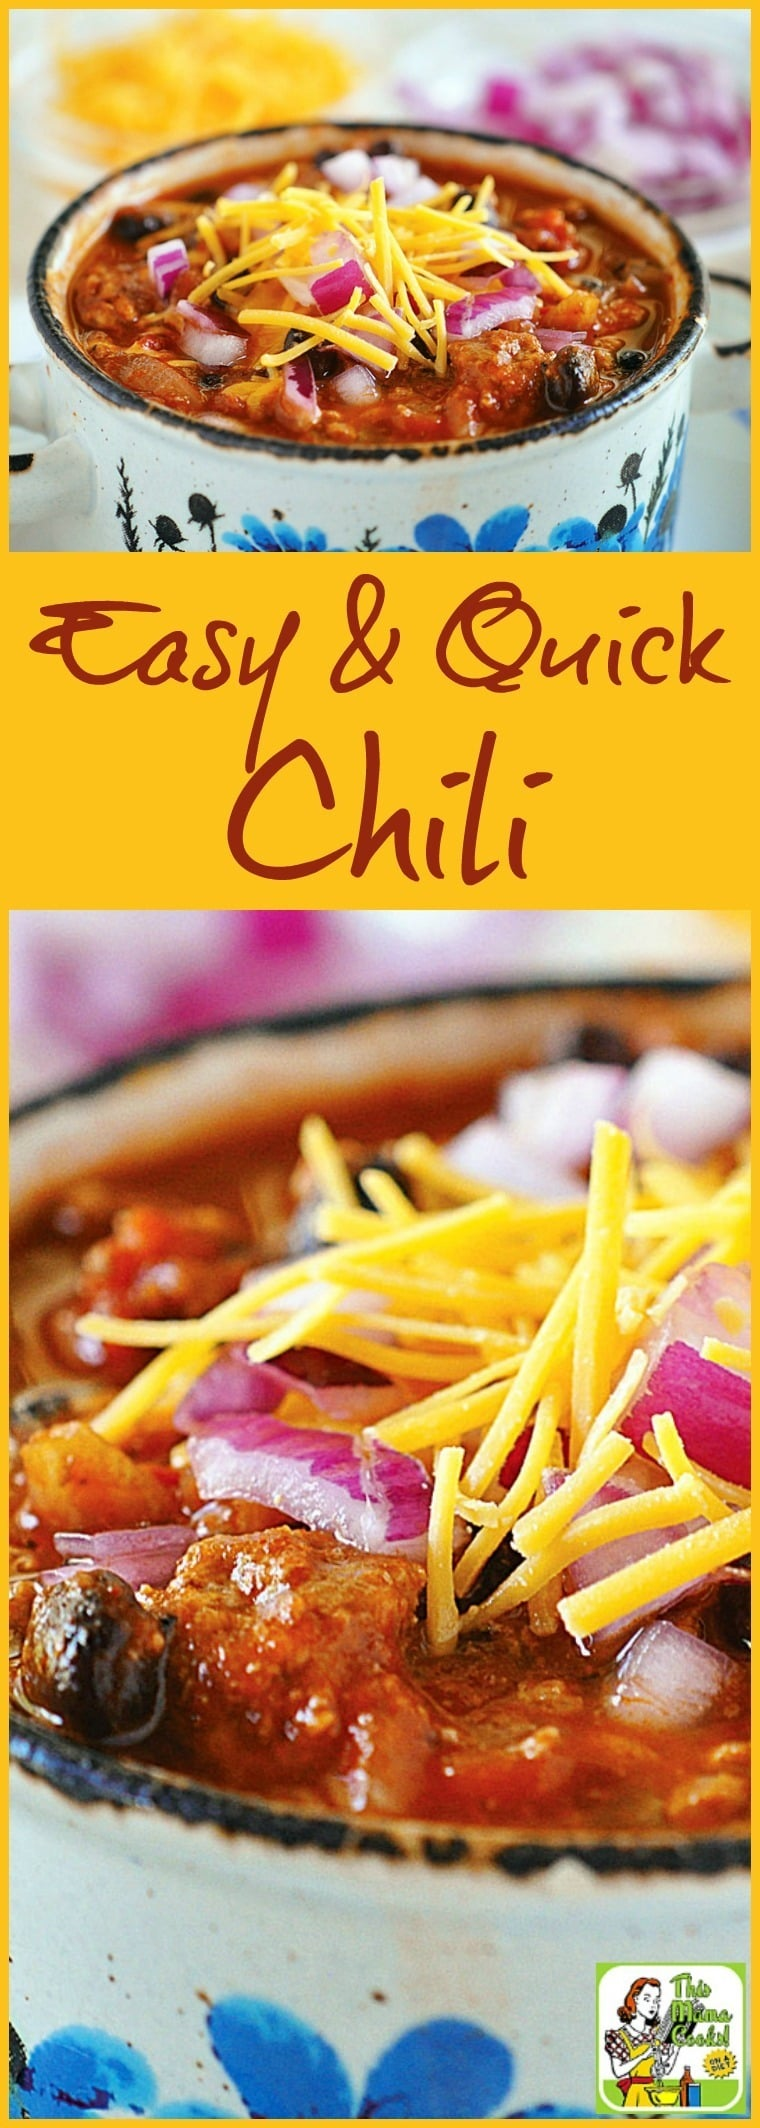 This Easy & Quick Chili is perfect for Halloween, fall or winter entertaining and dinners. Comes with a slow cooker option. Click to get this easy, quick and gluten free chili recipe. #recipes #easy #recipeoftheday #healthyrecipes #glutenfree #easyrecipes #chili #chilirecipes #slowcooker #slowcookerrecipes #crockpot #crockpotrecipes